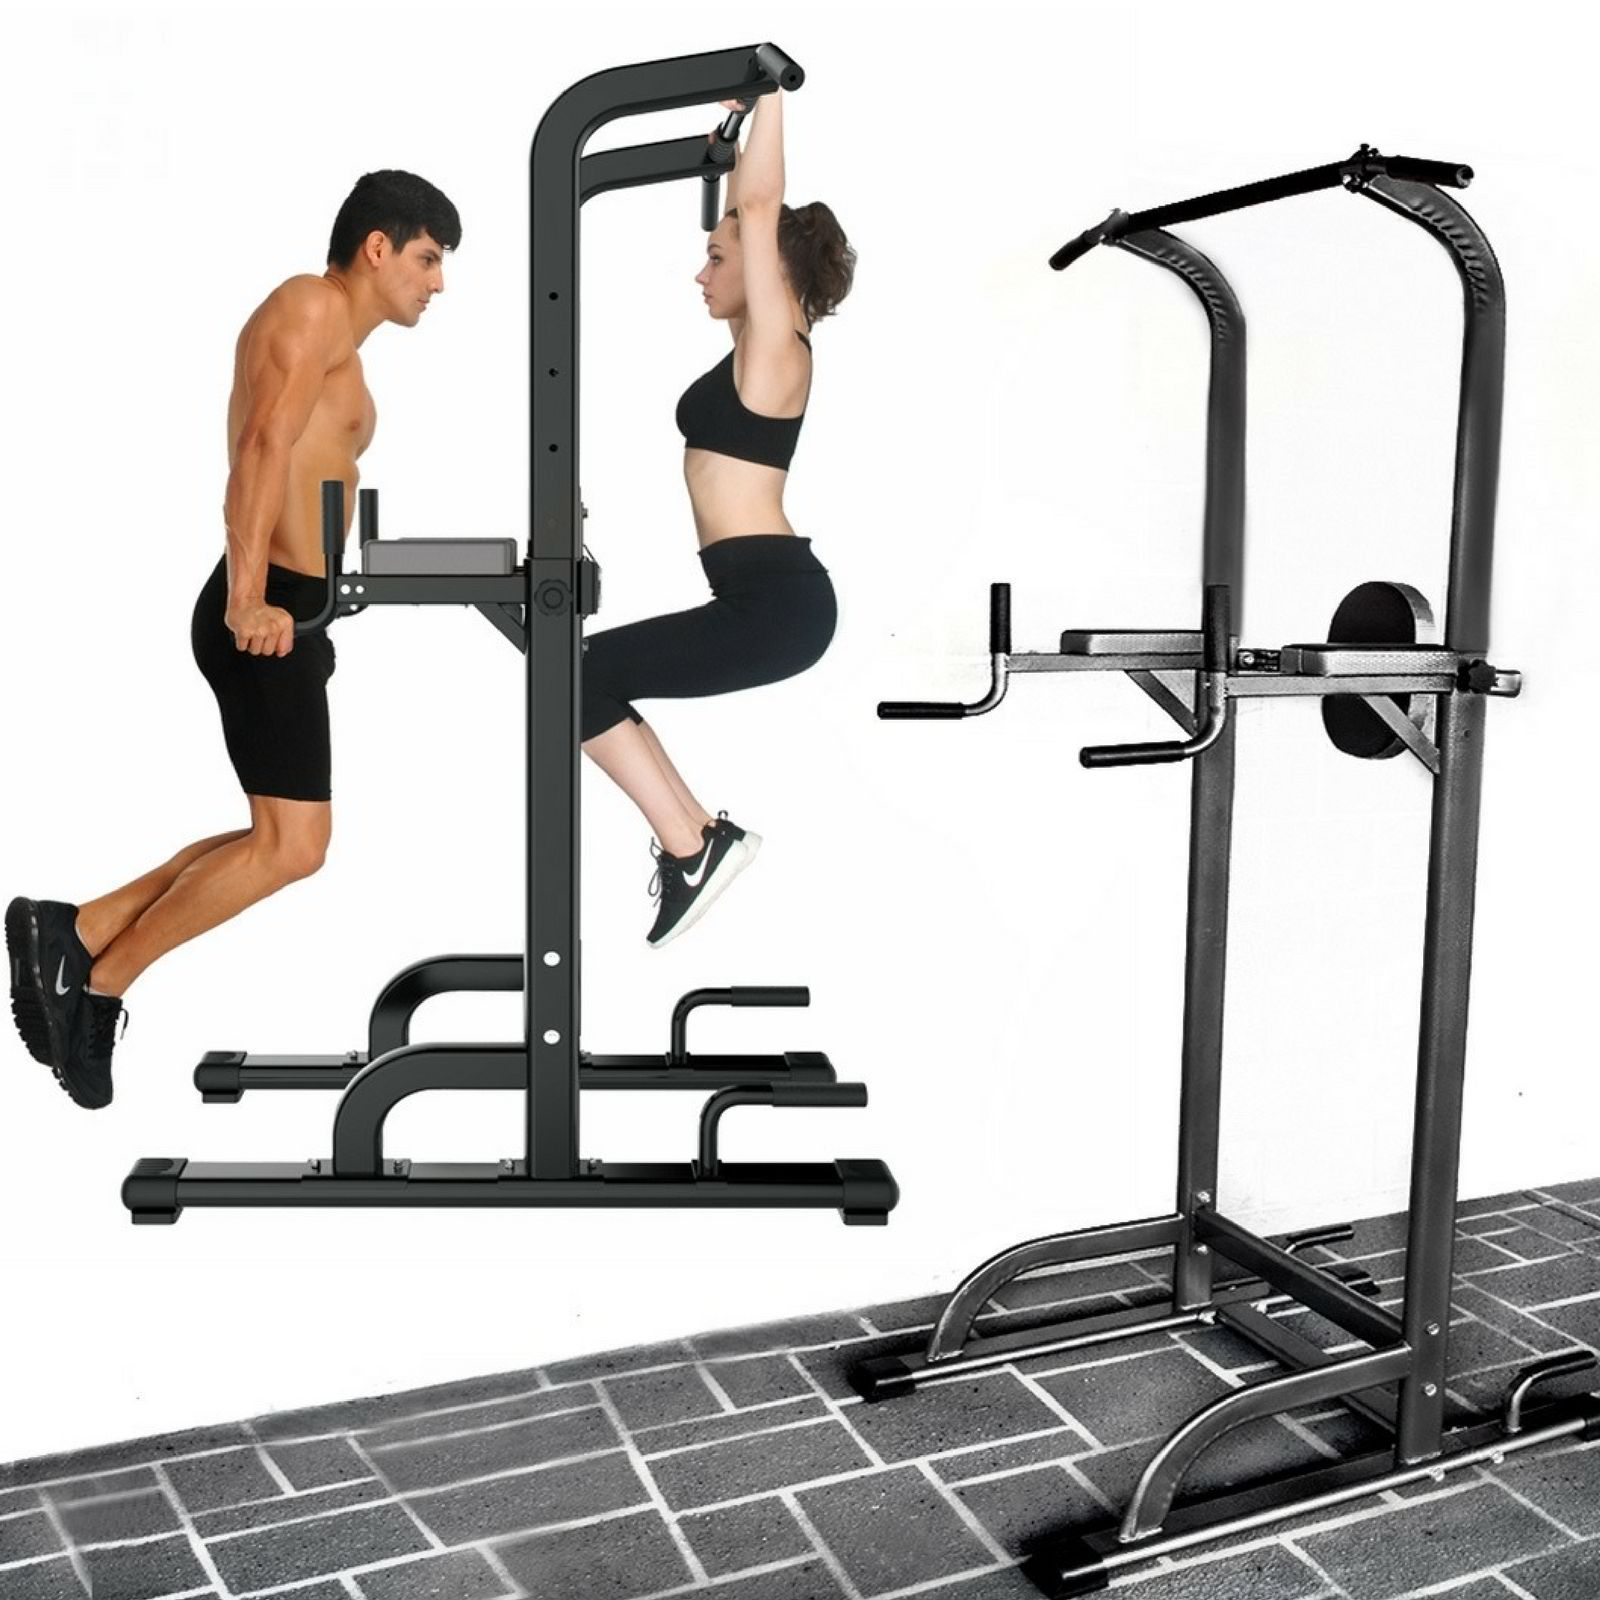 power tower gym dip station home multi chin pull push up. Black Bedroom Furniture Sets. Home Design Ideas